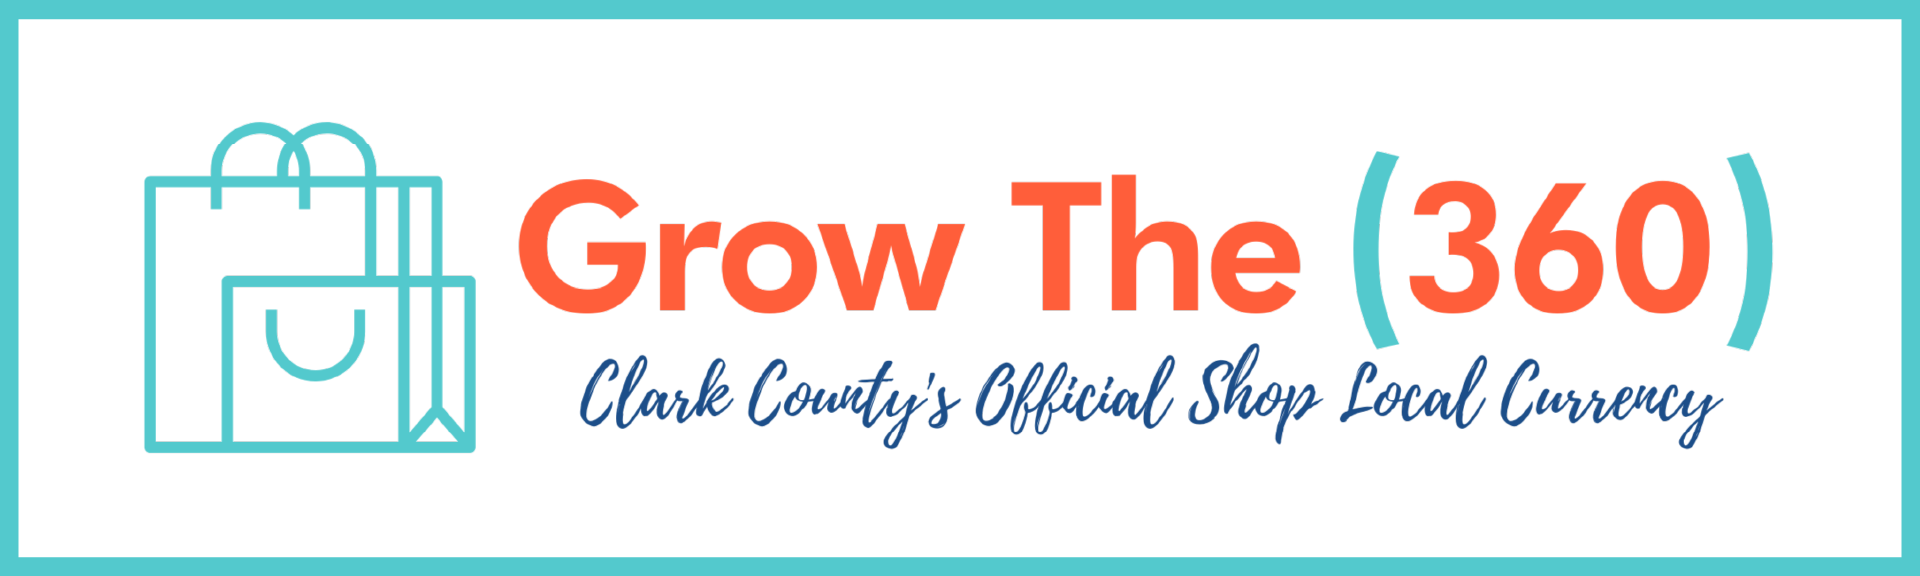 Growth the (360) - Clark County's Official Local Currency